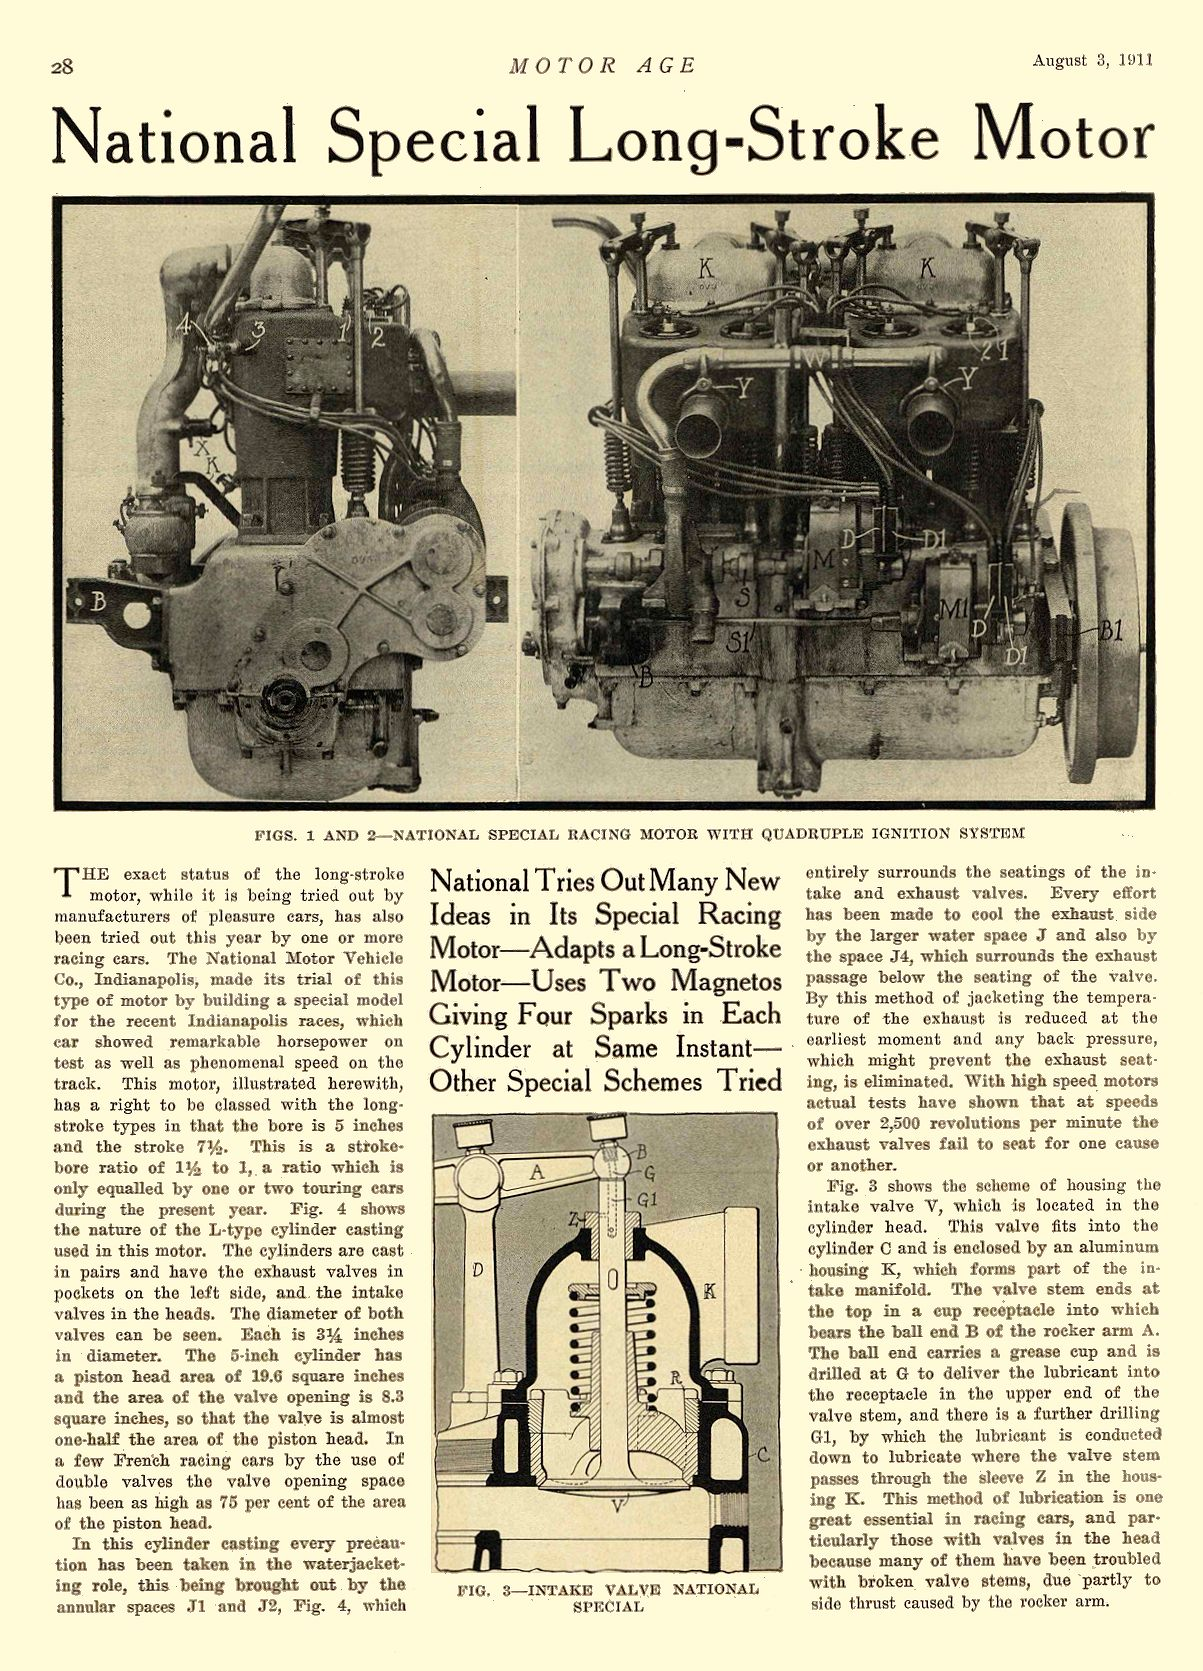 1911 8 3 NATIONAL Article National Special Long-Stroke Motor National Motor Vehicle Co. Indianapolis, IND MOTOR AGE August 3, 1911 8.5″x11.75″ page 28